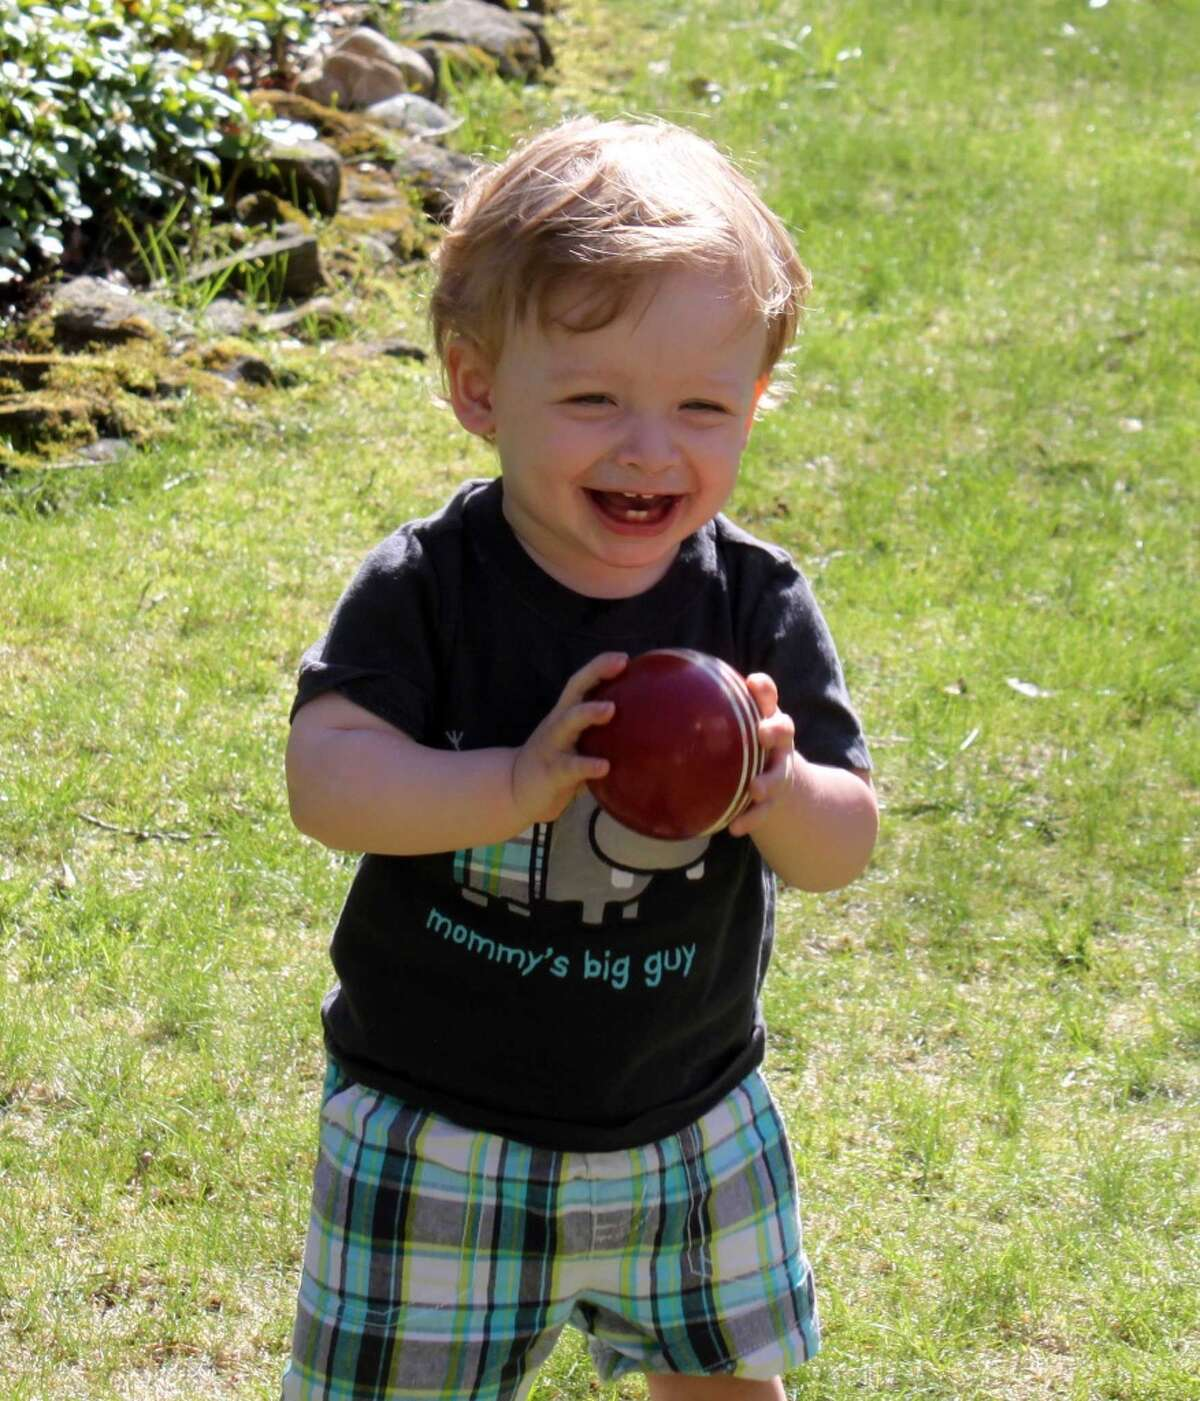 """Benjamin Seitz, the 15-month-old son of Kyle and Lindsey Rogers-Seitz of Ridgefield, died July 7 after his father left him in the car for what police called """"an extended period of time."""""""